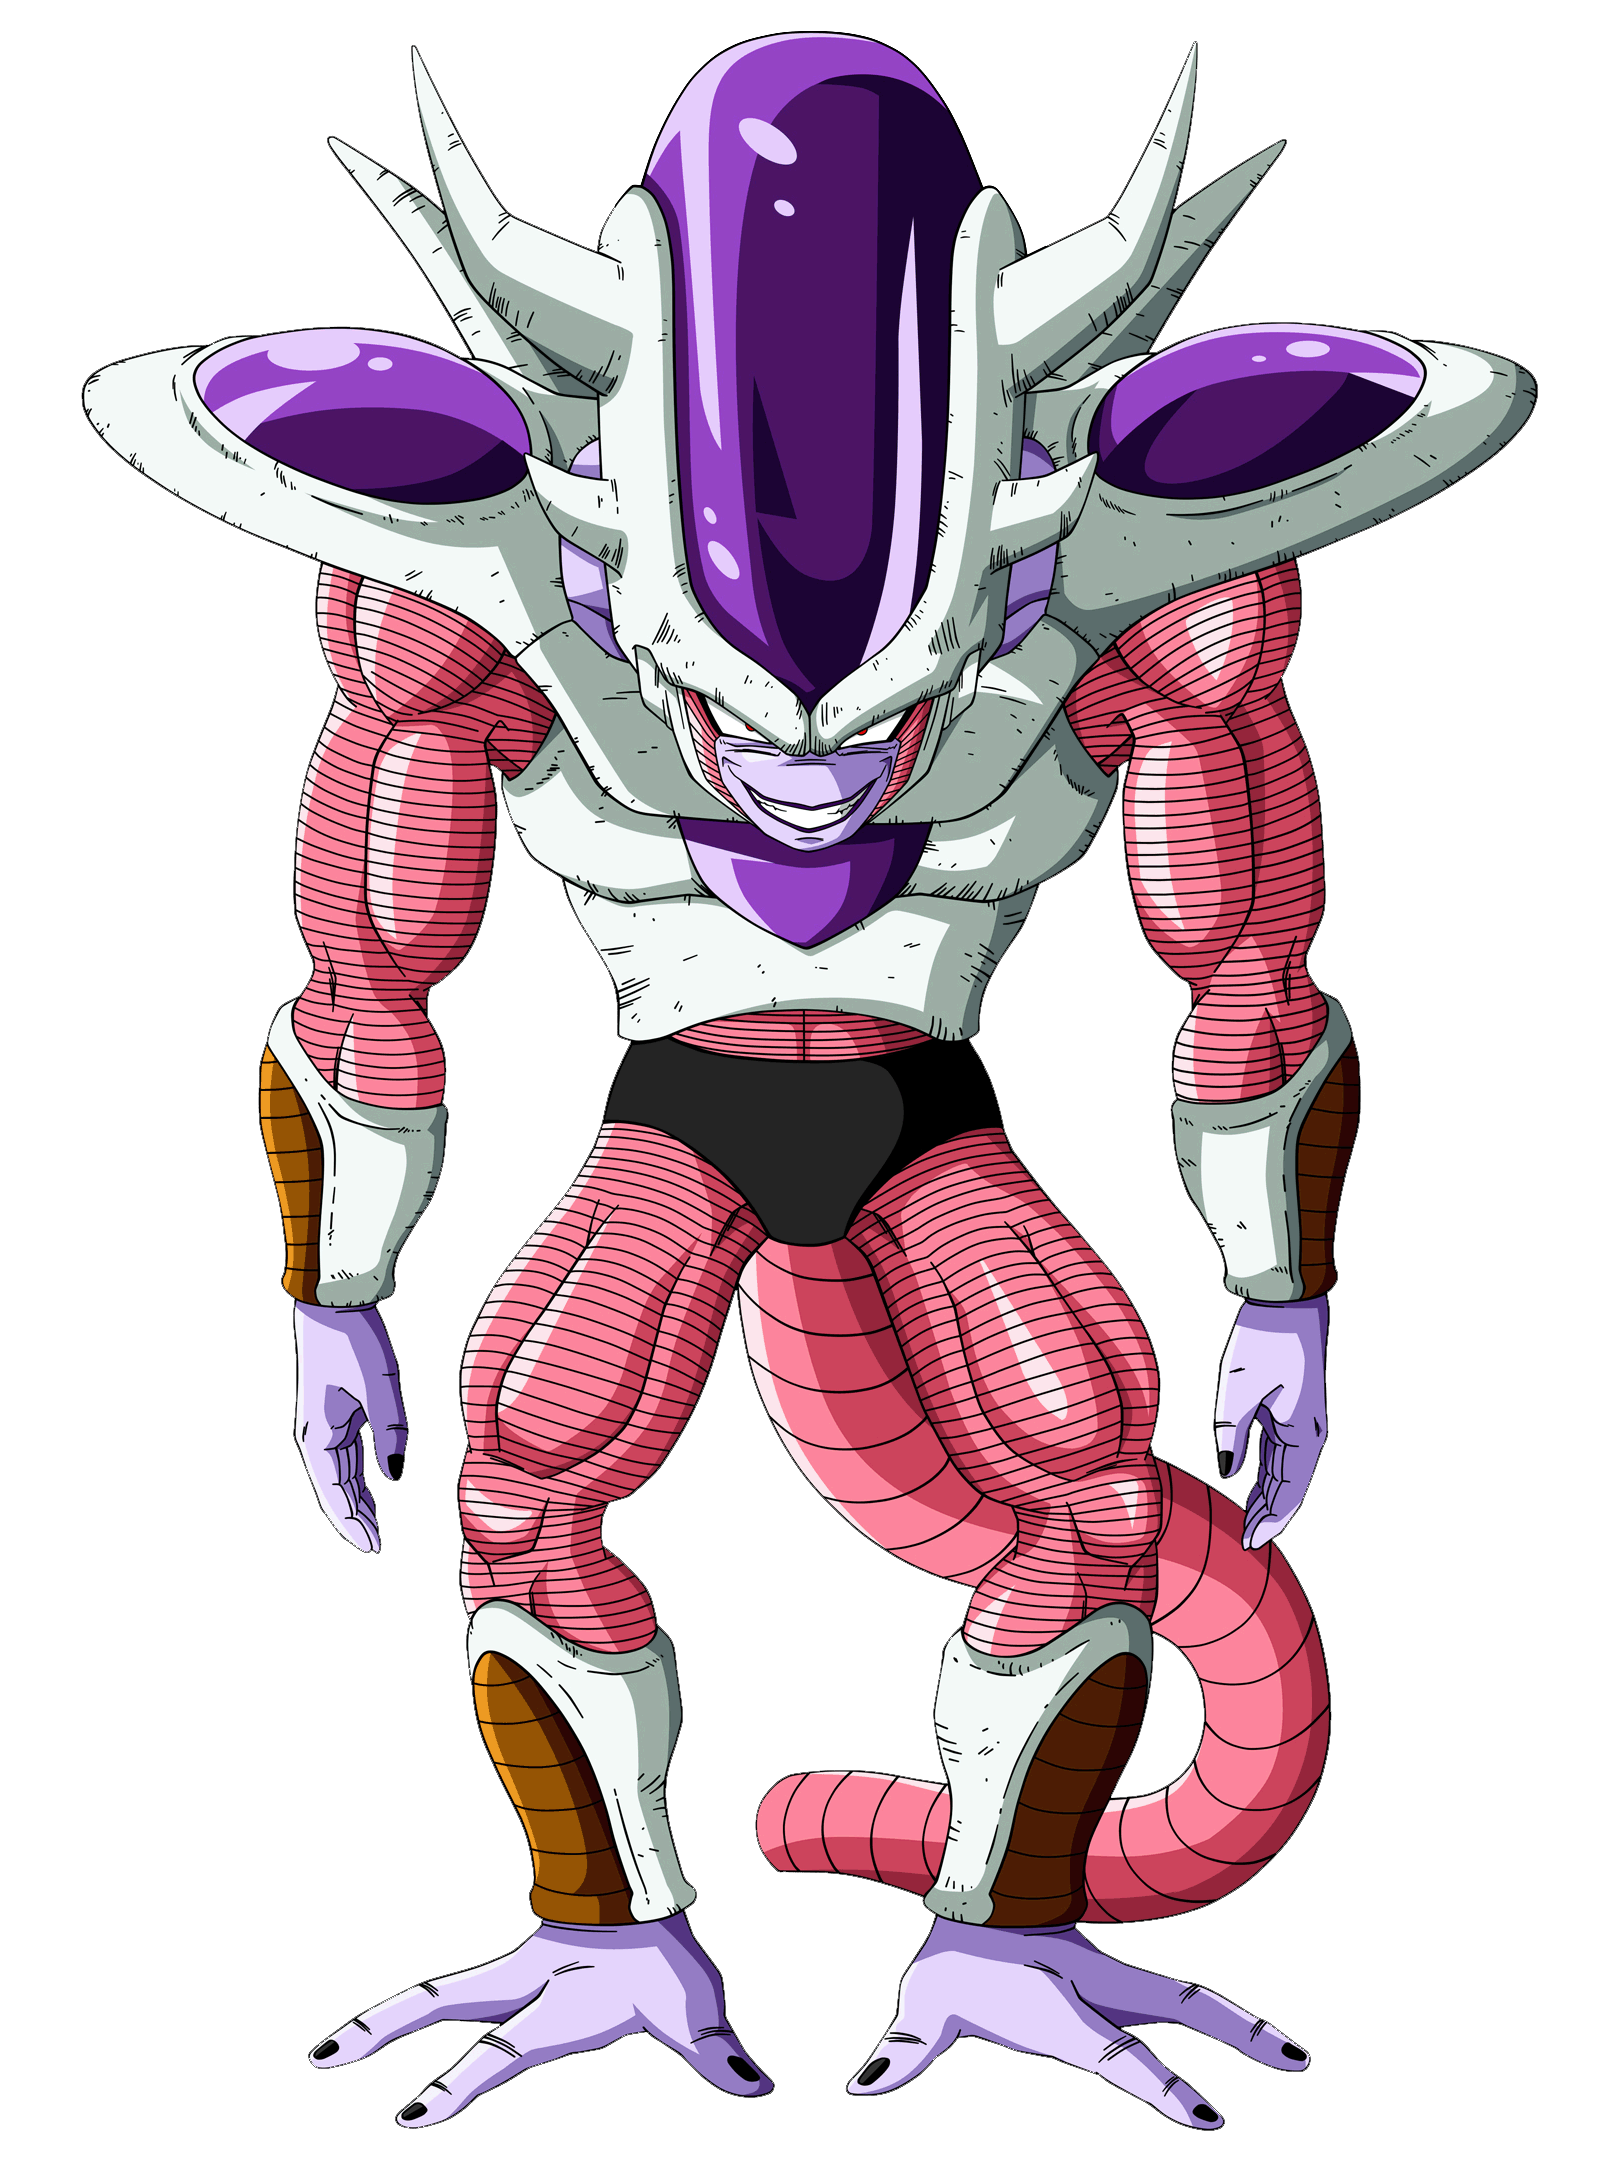 Frieza | Villains Wiki | FANDOM powered by Wikia